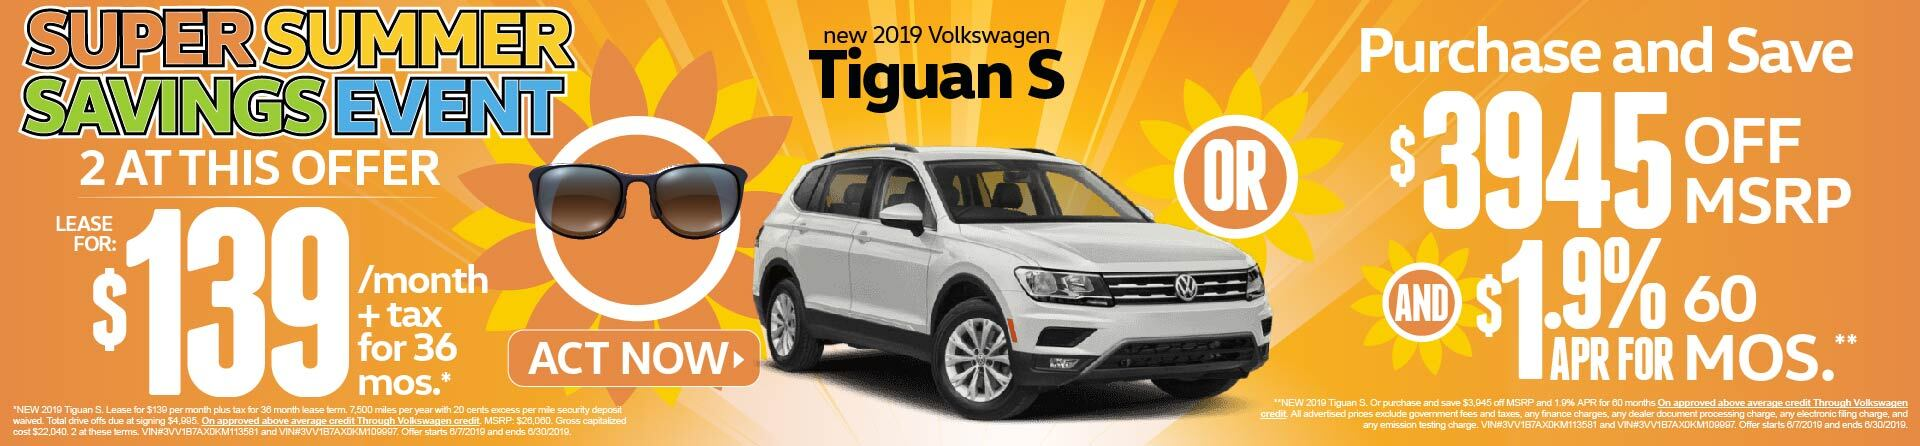 Summer Savings Event Tiguan